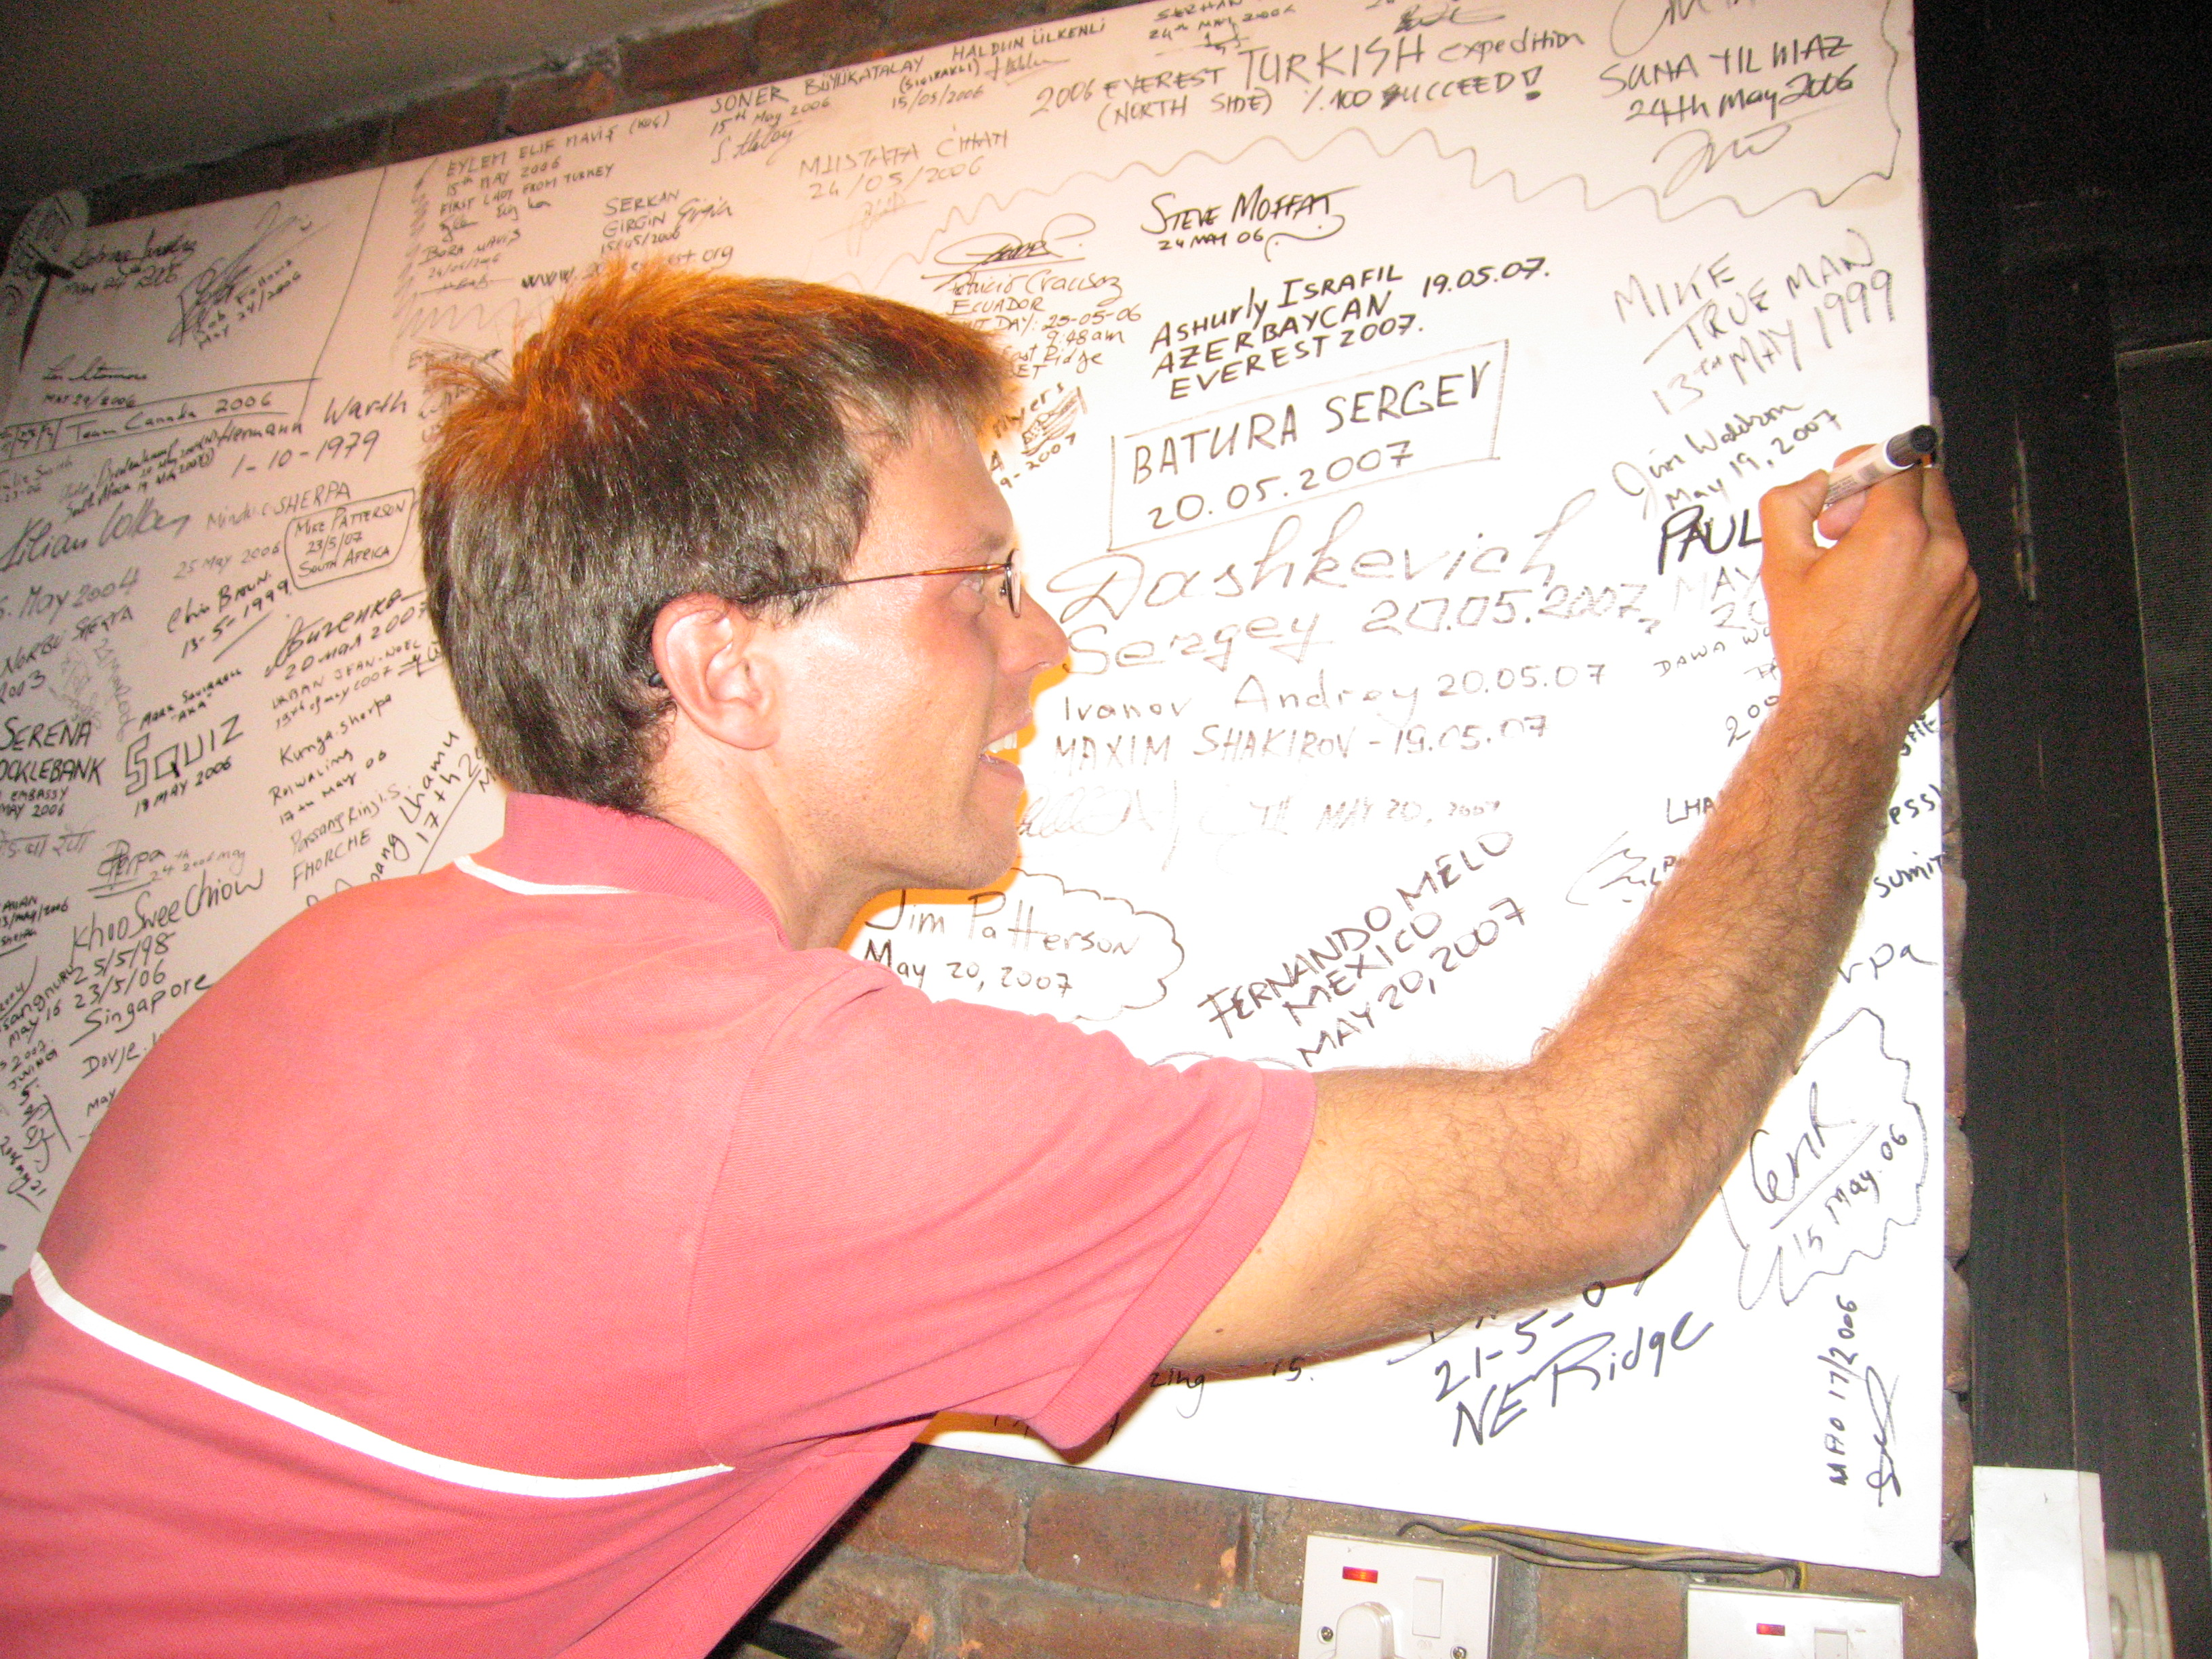 Paul signing his name on the Everest board in Rumdoodle, Kathmandu